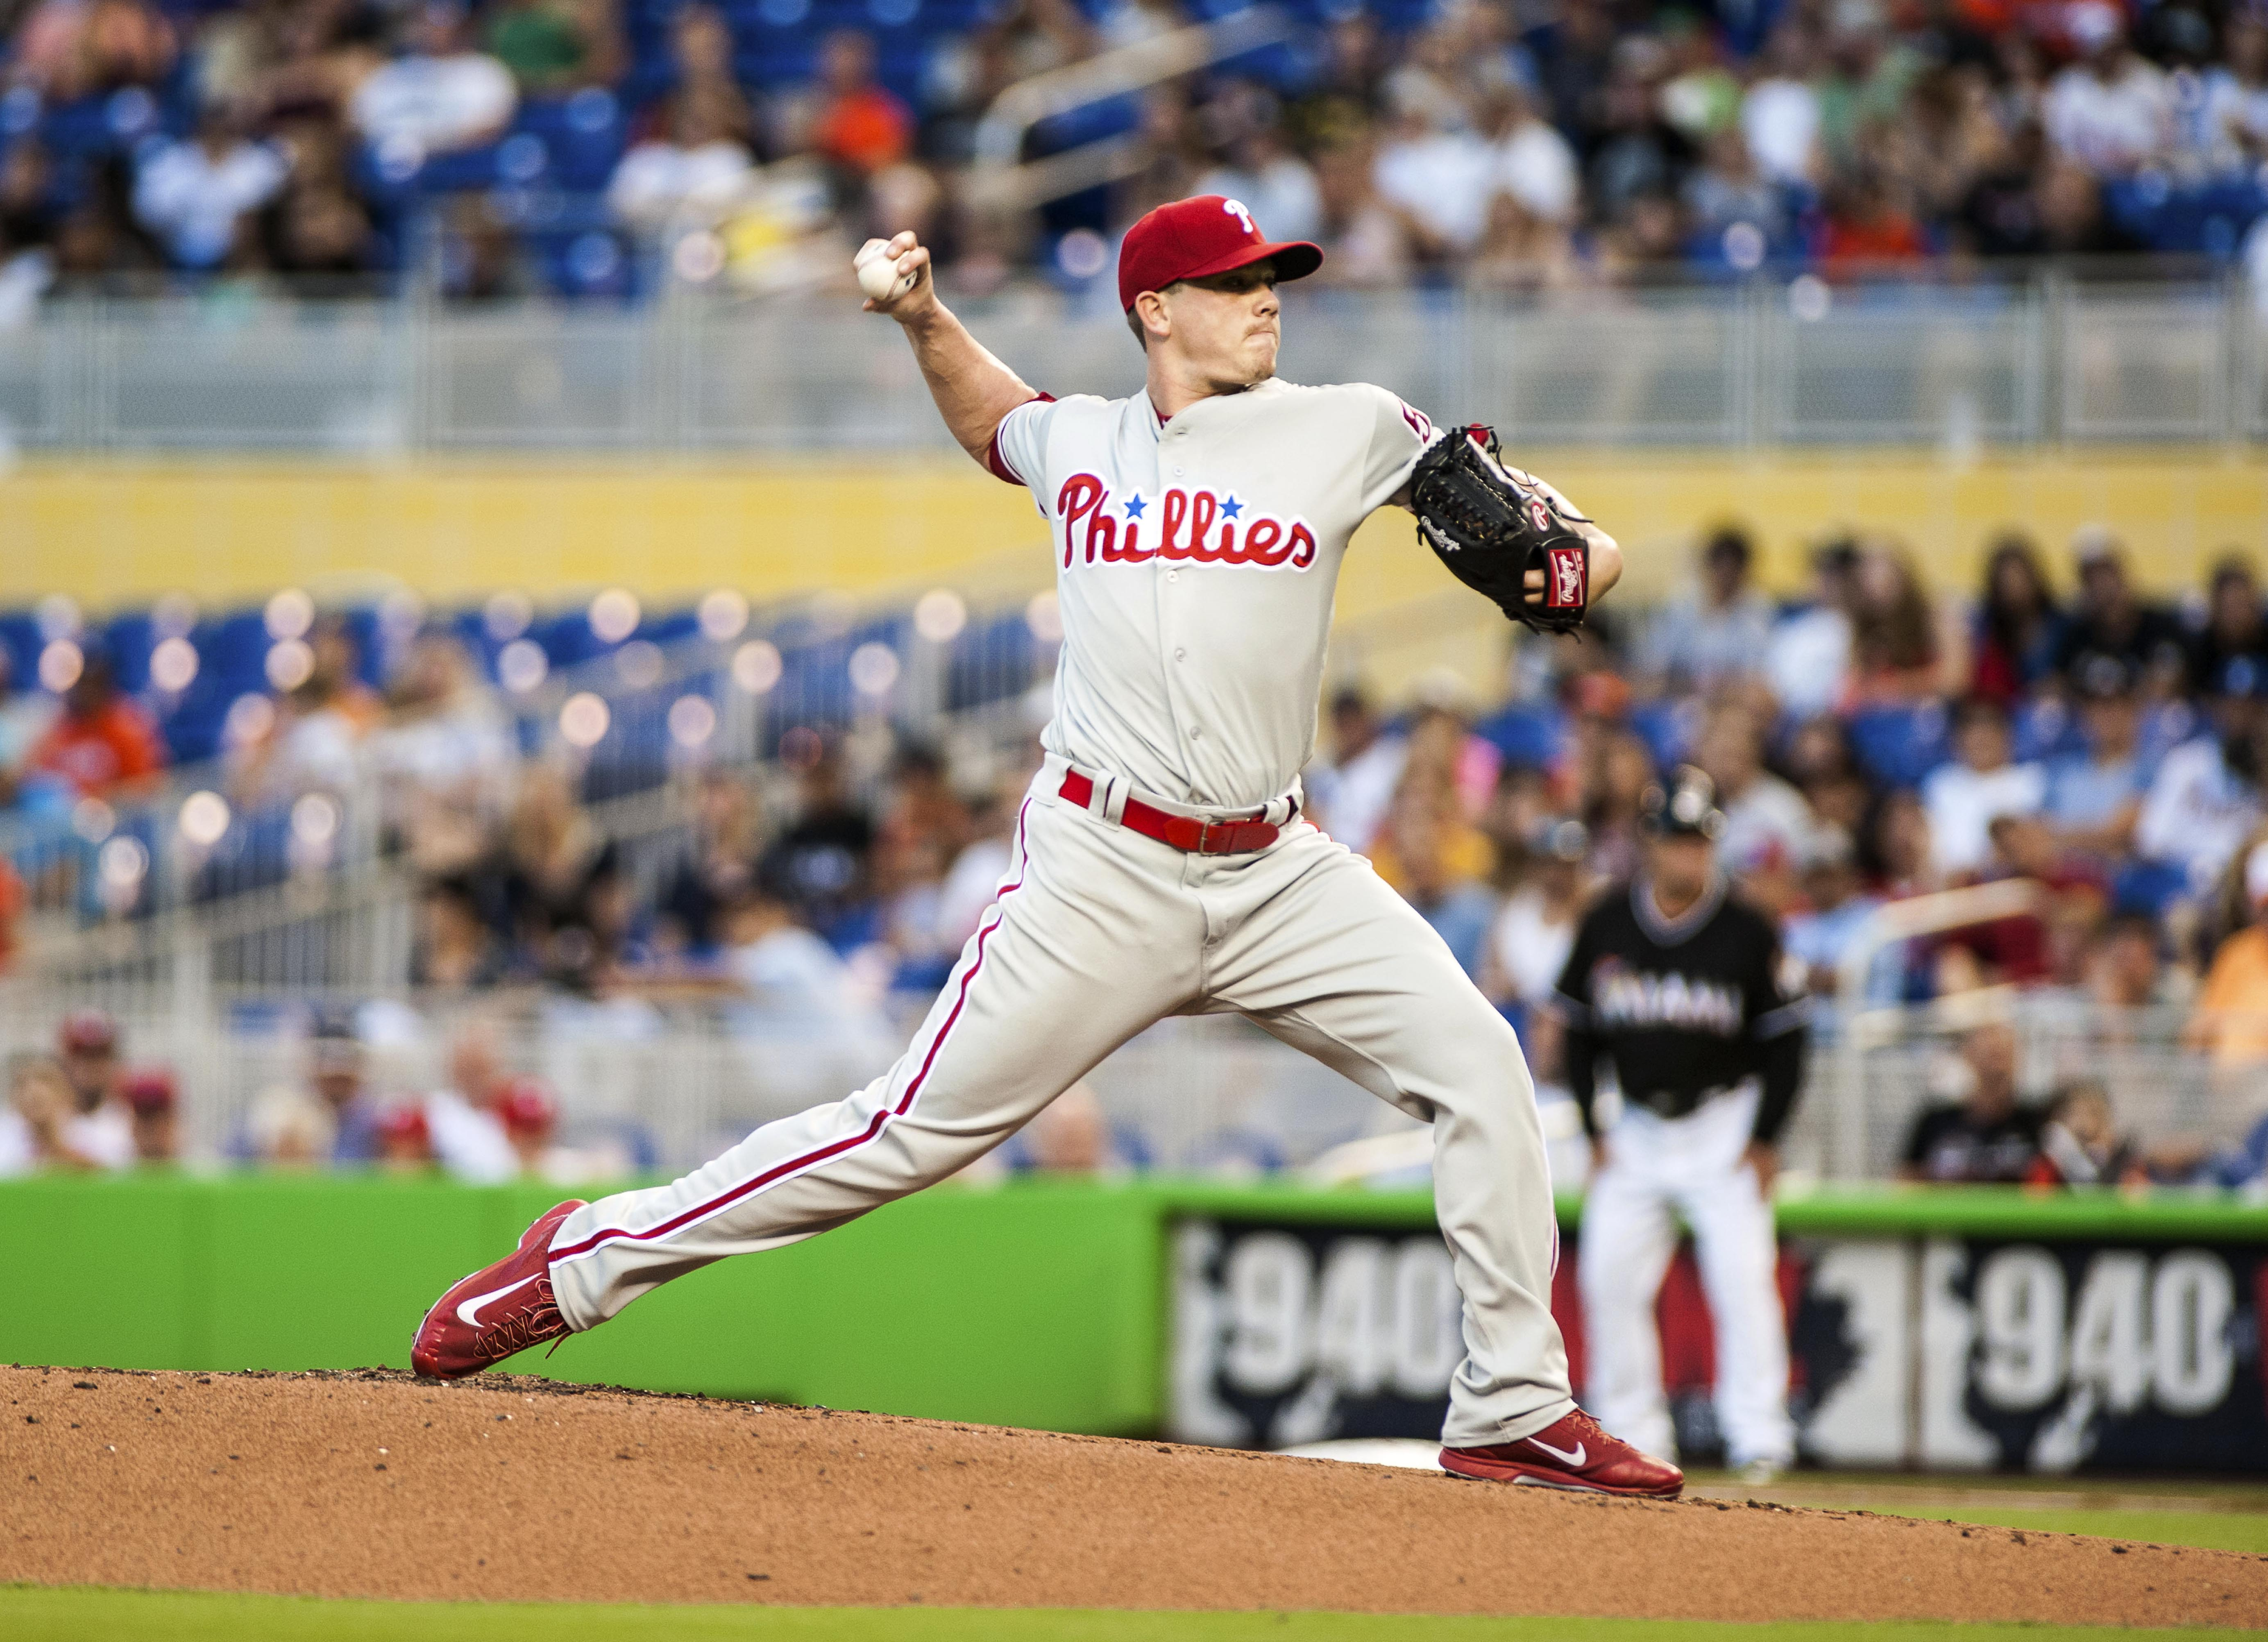 Philadelphia Phillies starting pitcher Jeremy Hellickson throws during the first inning of a baseball game against the Miami Marlins, Saturday May 7, 2016, in Miami. (AP Photo/Gaston De Cardenas)